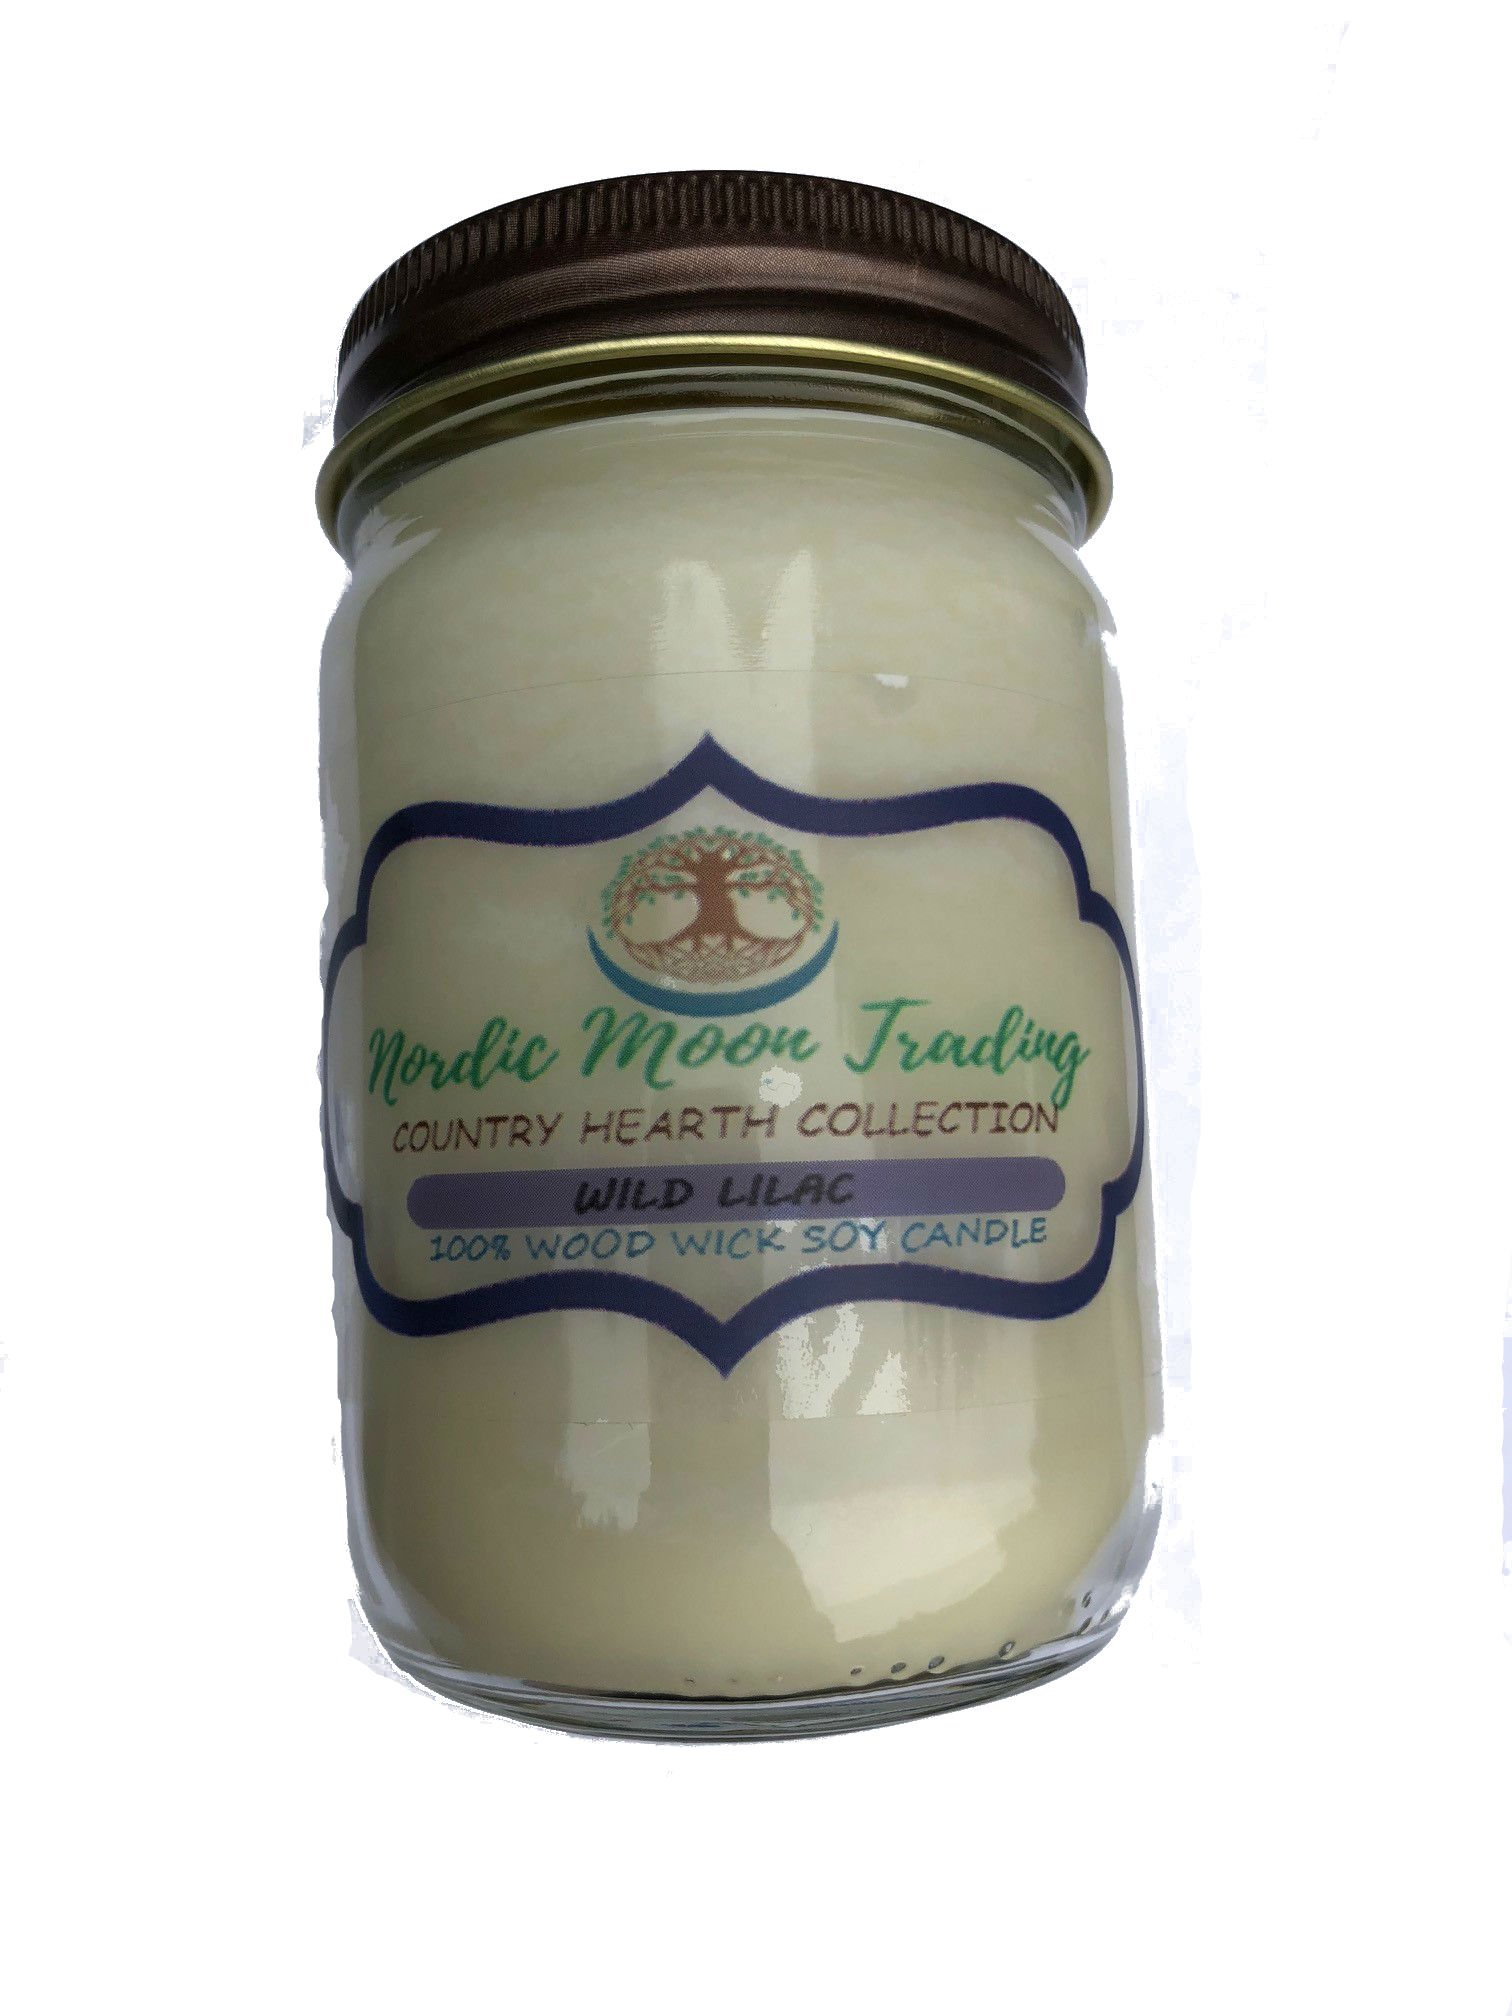 Nordic Moon Trading 100% Natural Soy Wax, Wood Wick Scented Candle 12 oz Mason Jar - Wild Lilac. Made in USA by Family Owned Business. 100 Hours of Burn Time. Clean Burning, No Black Soot.